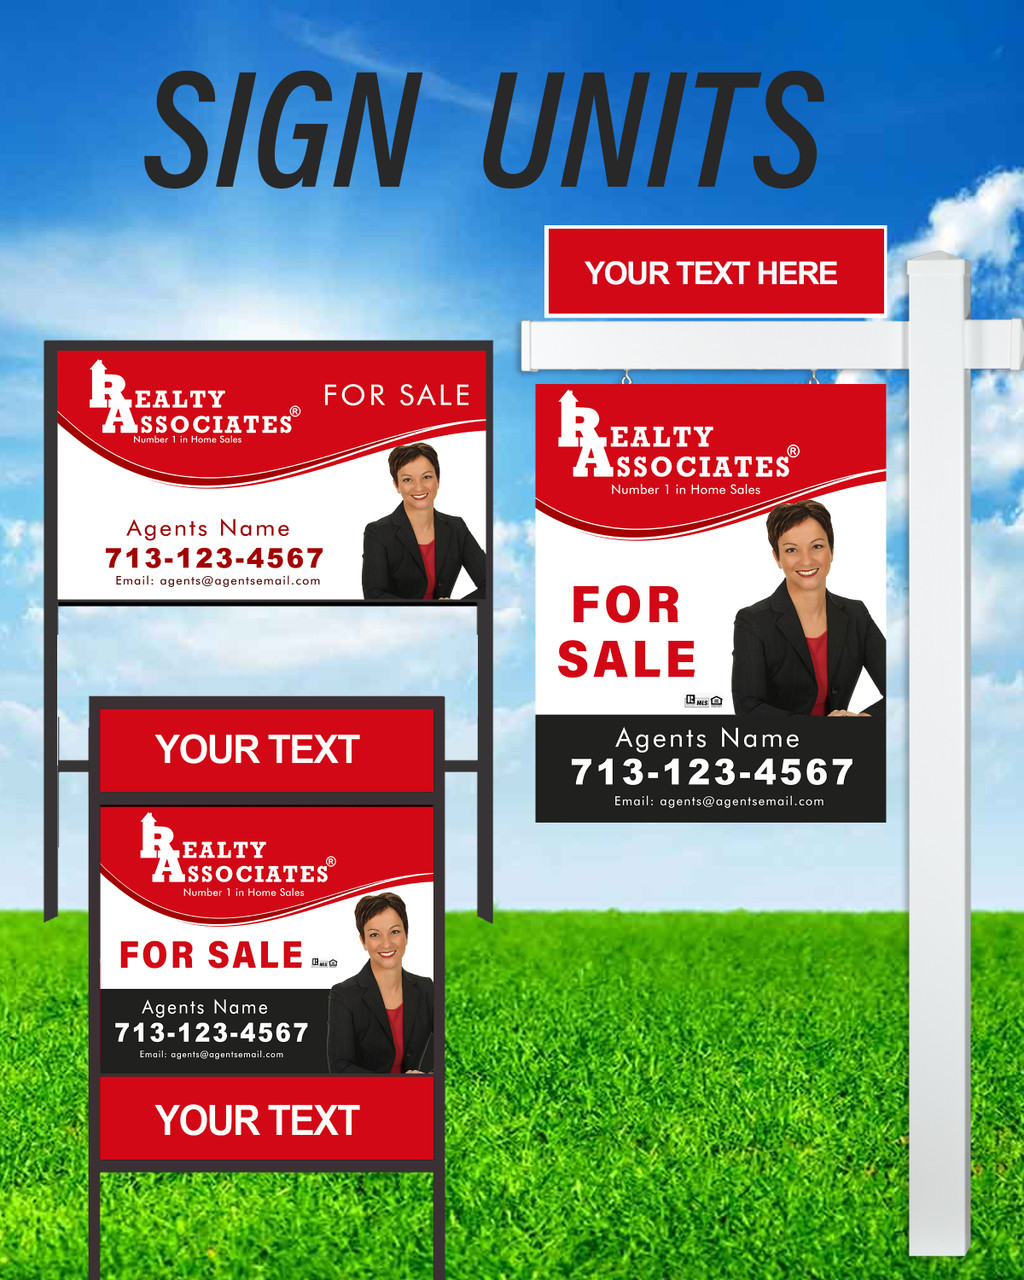 Realty Associates Signs Units